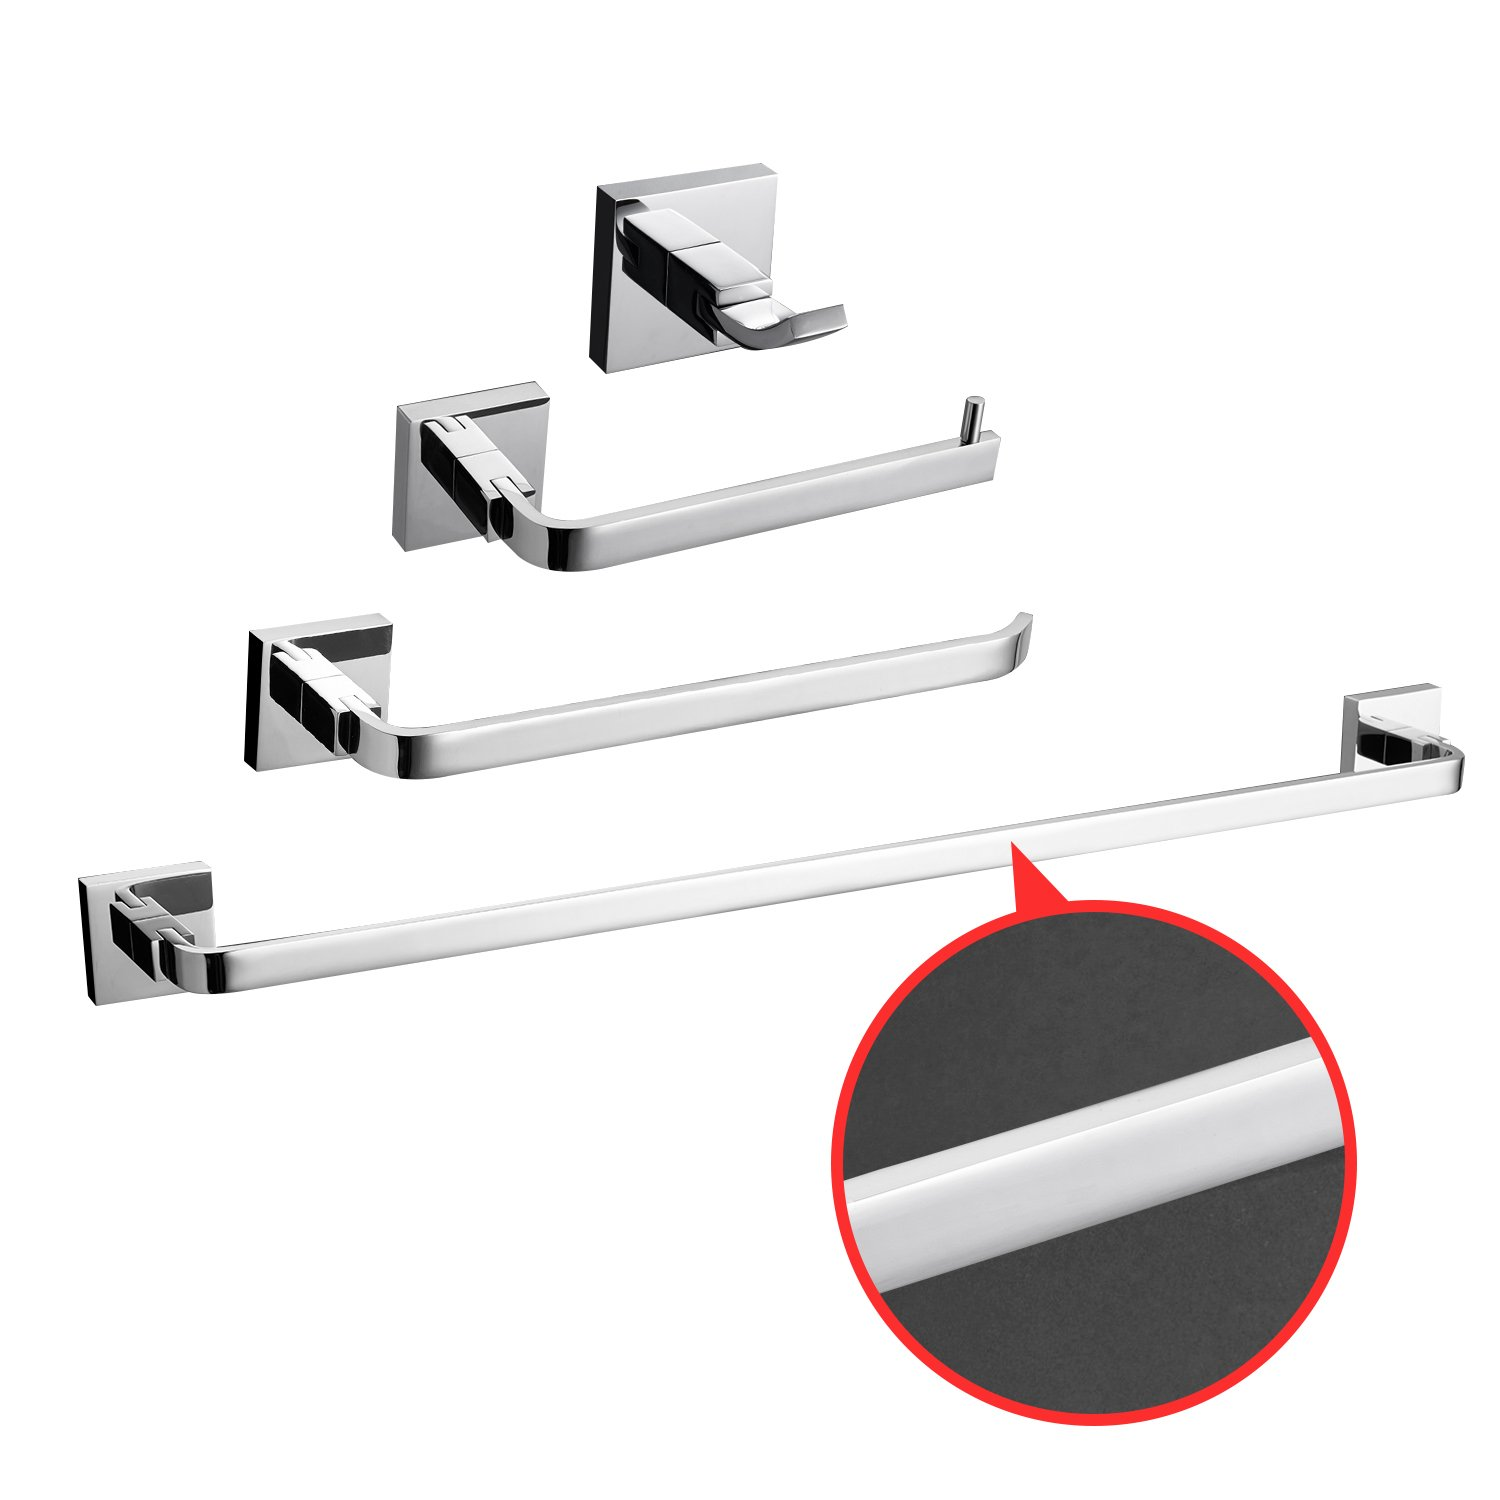 LightInTheBox Bathroom Hardware Set Solid Brass Chrome Finish 4 Pcs Bathroom Accessories Combo Towel Bar Towel Rack Toilet Paper Holder and Robe Hook